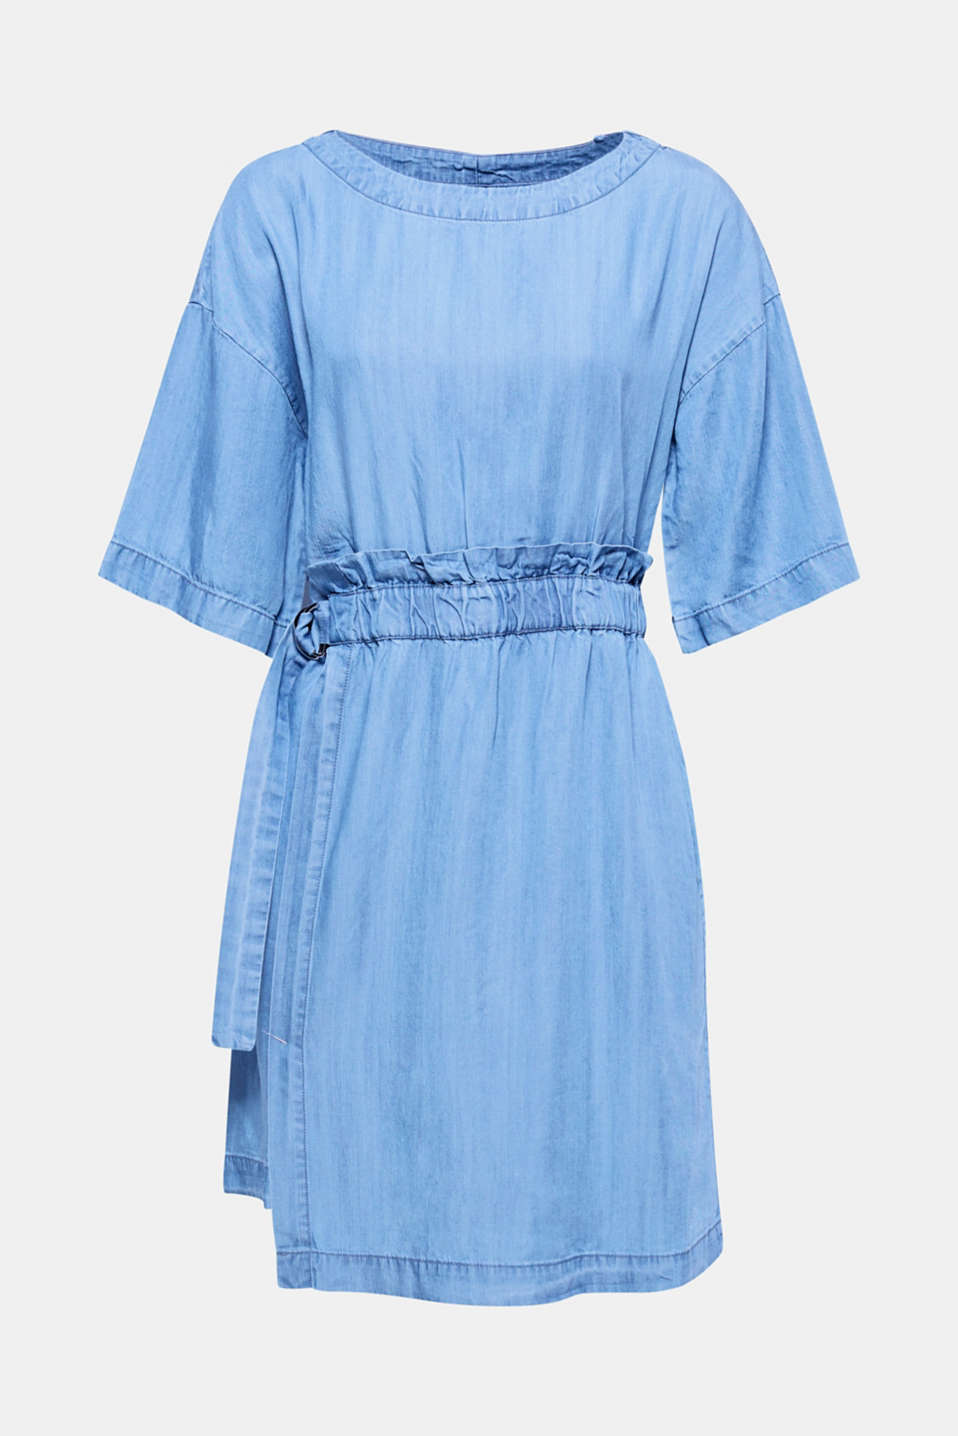 This softly draped dress made of denim-effect lyocell features an eye-catching waist in a trendy paperbag style – gathered and with decorative clasps on the sides!